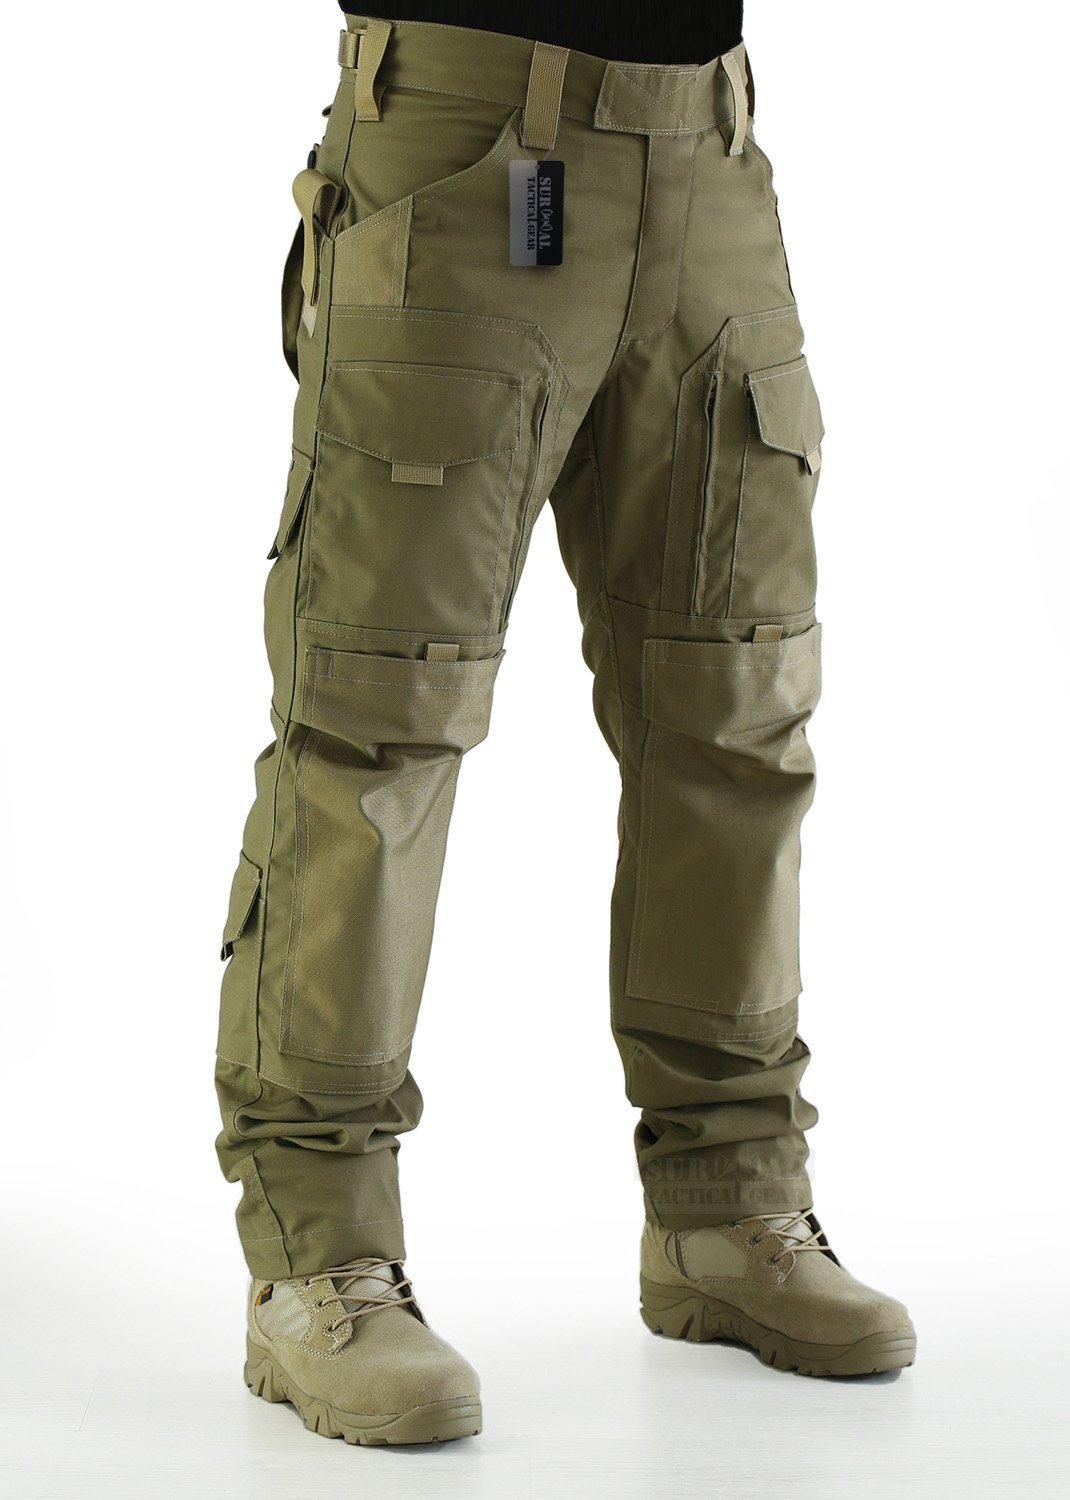 ZAPT Tactical Molle Ripstop Combat Trousers Army Multicam/A-TACS LE Camo Pants for Men (Coyote Brown, M)